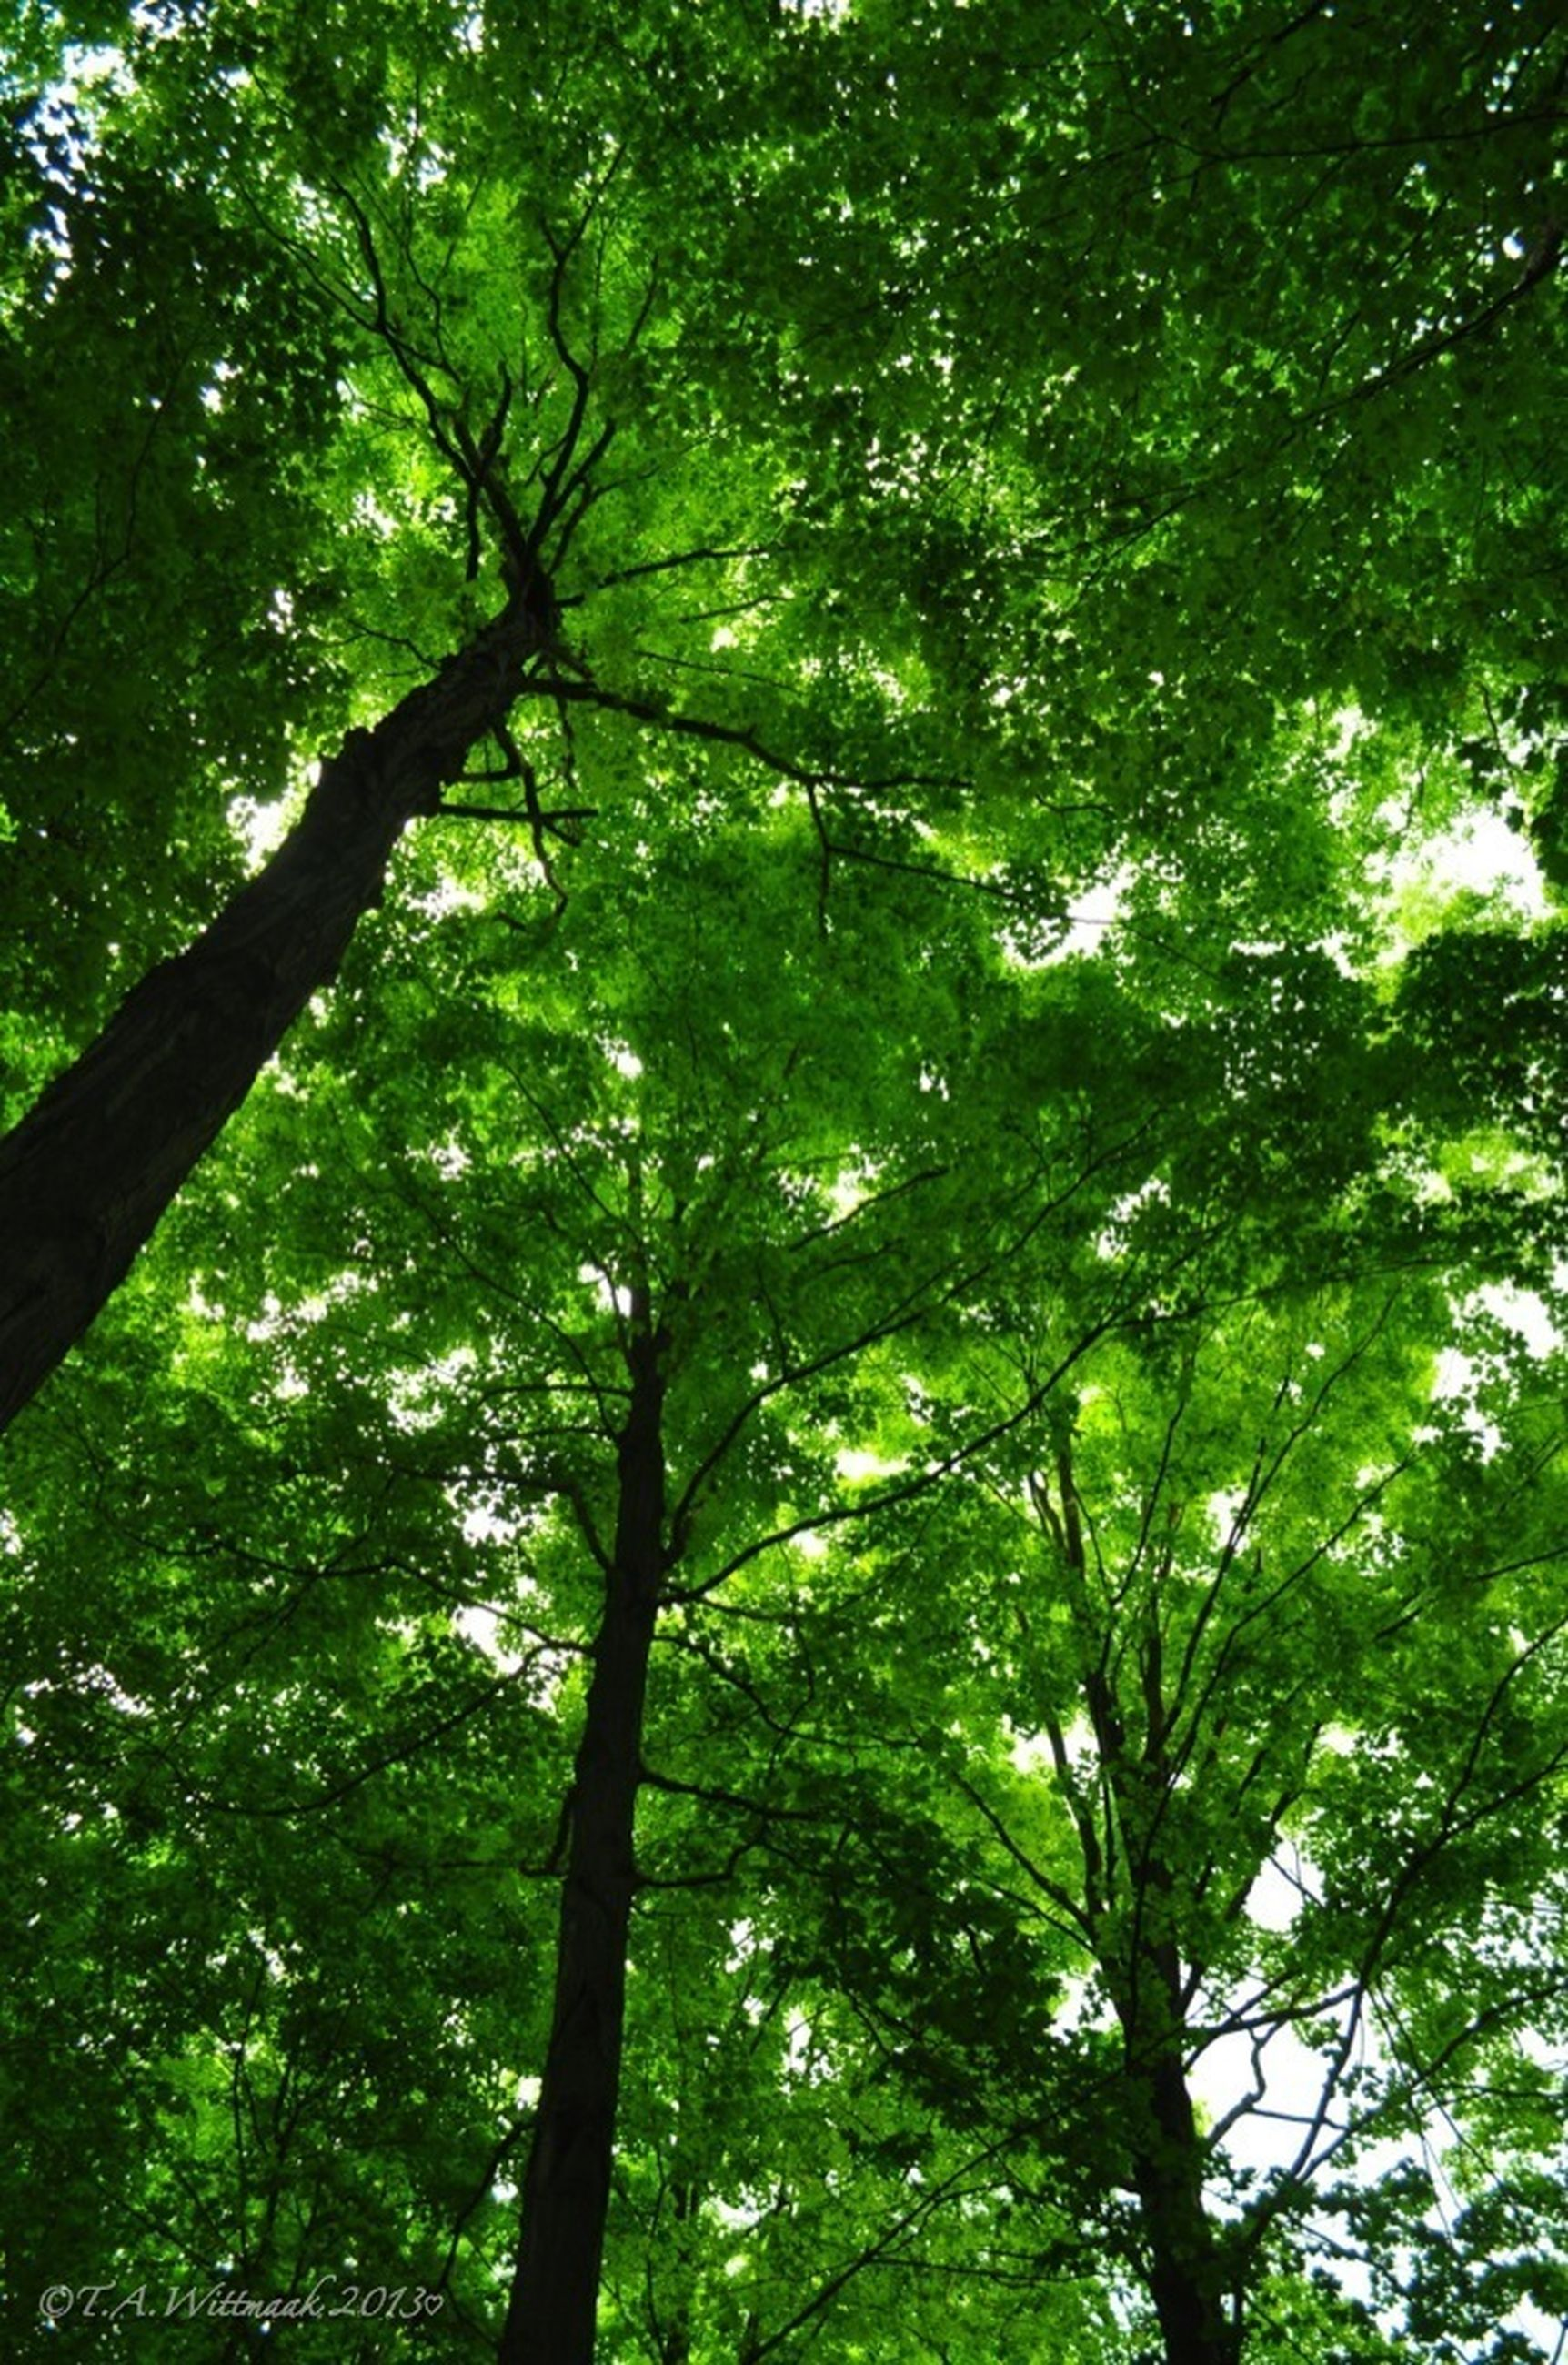 tree, low angle view, growth, branch, green color, forest, tranquility, nature, tree trunk, beauty in nature, lush foliage, backgrounds, day, tranquil scene, outdoors, full frame, no people, scenics, green, sunlight